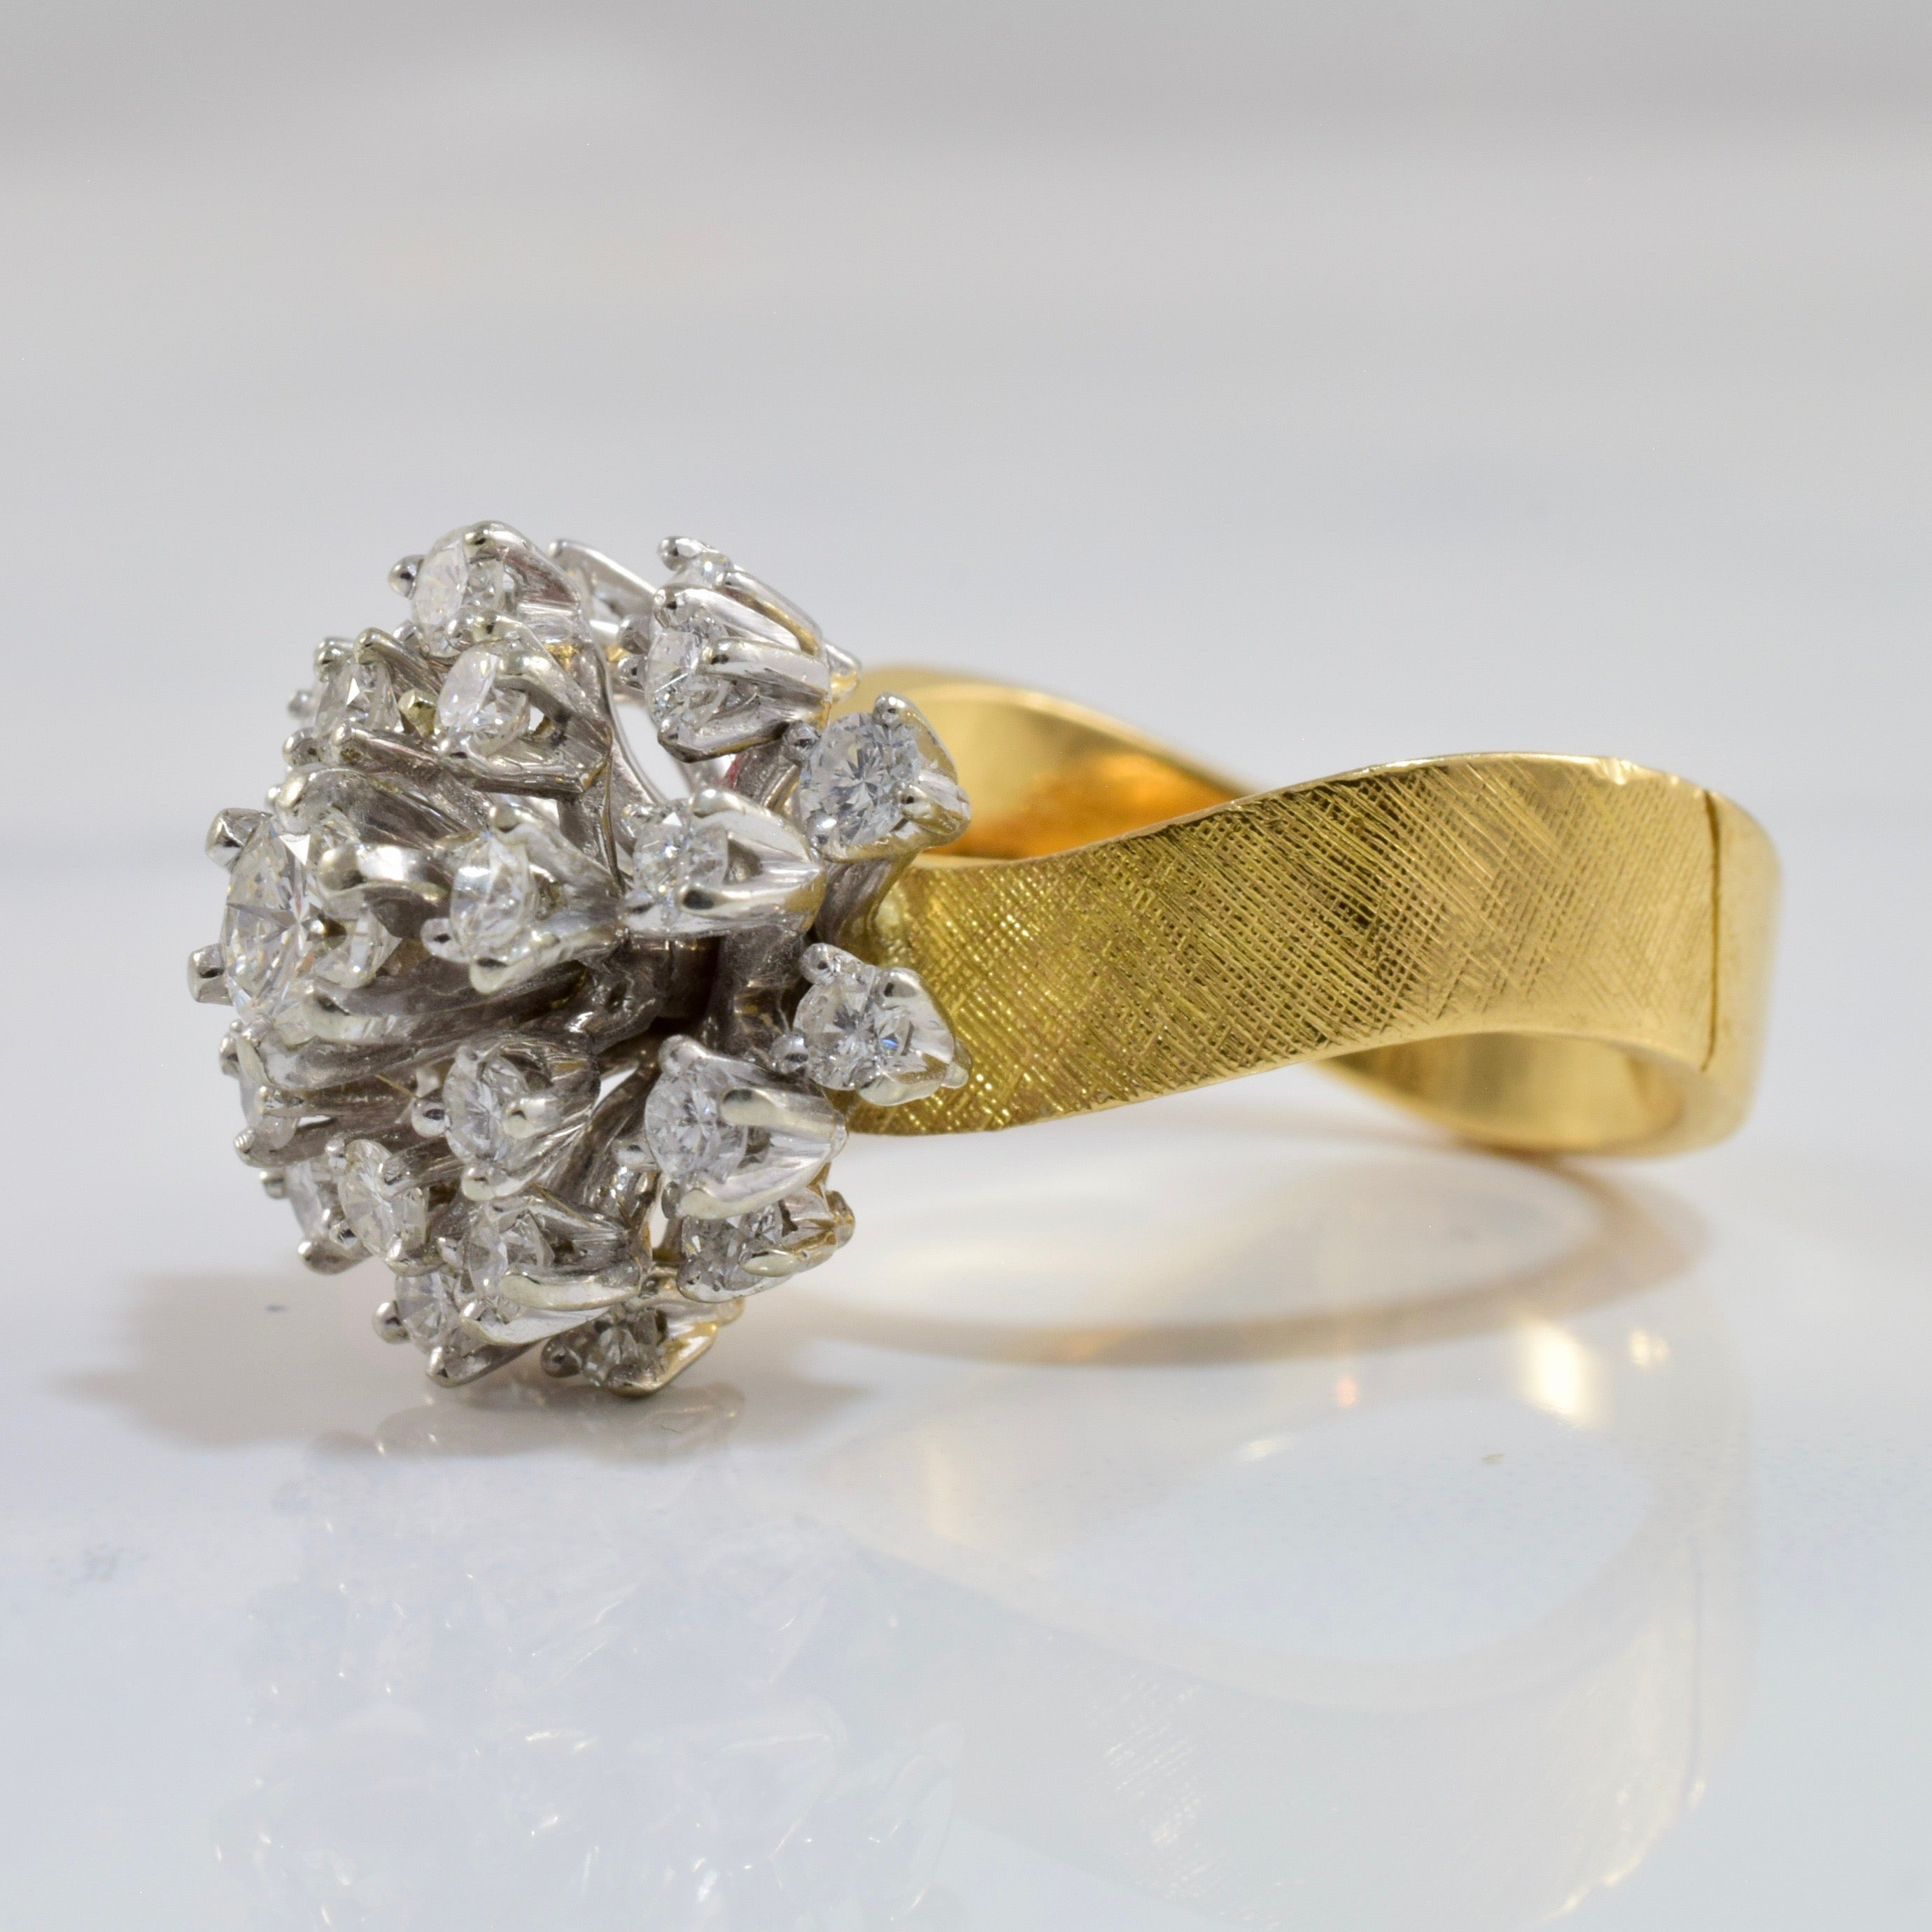 High Set Diamond Cocktail Cluster Ring | 1.55 ctw SZ 5.75 |